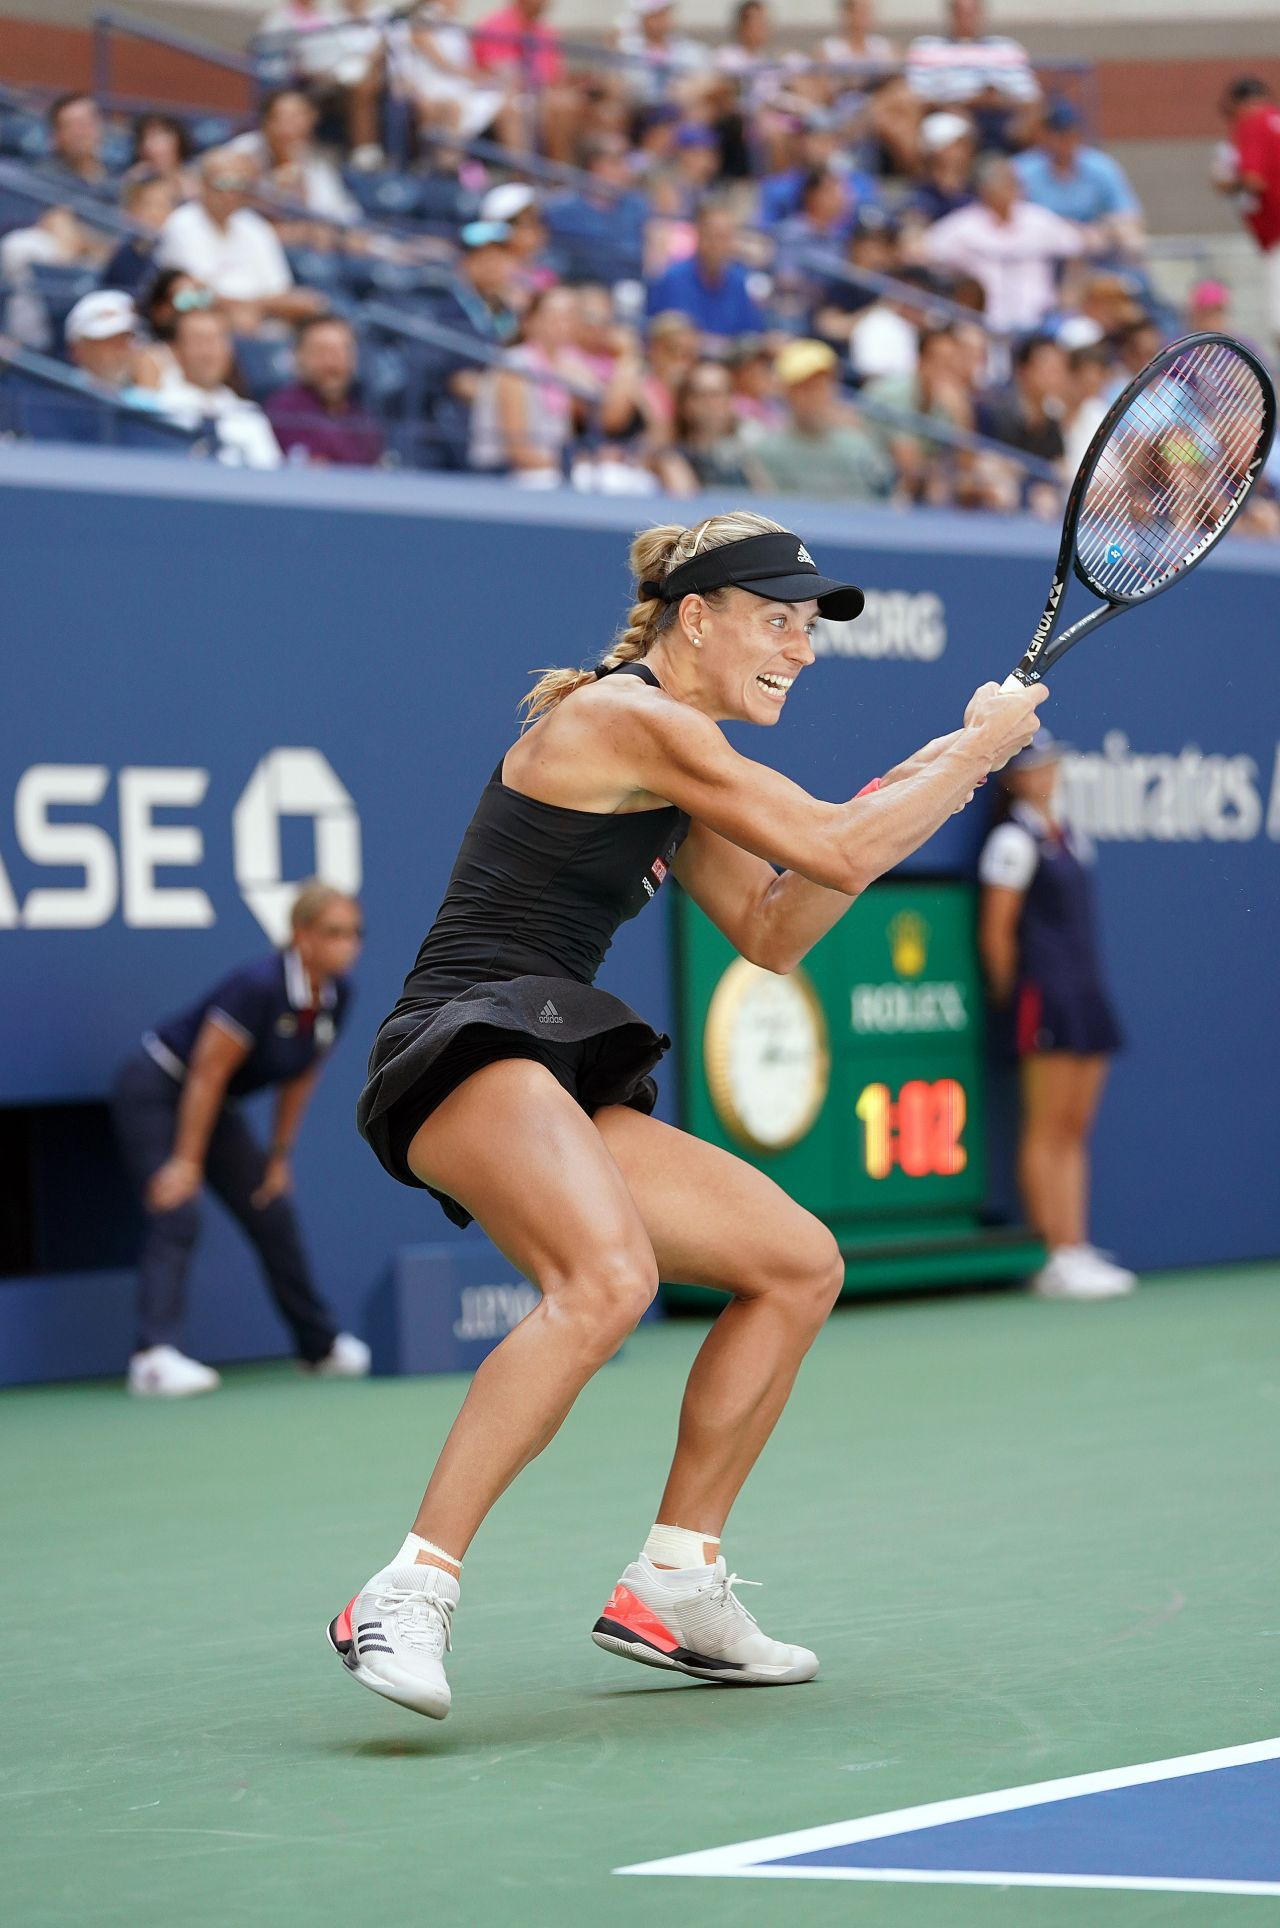 Us Open 2021 Kerber